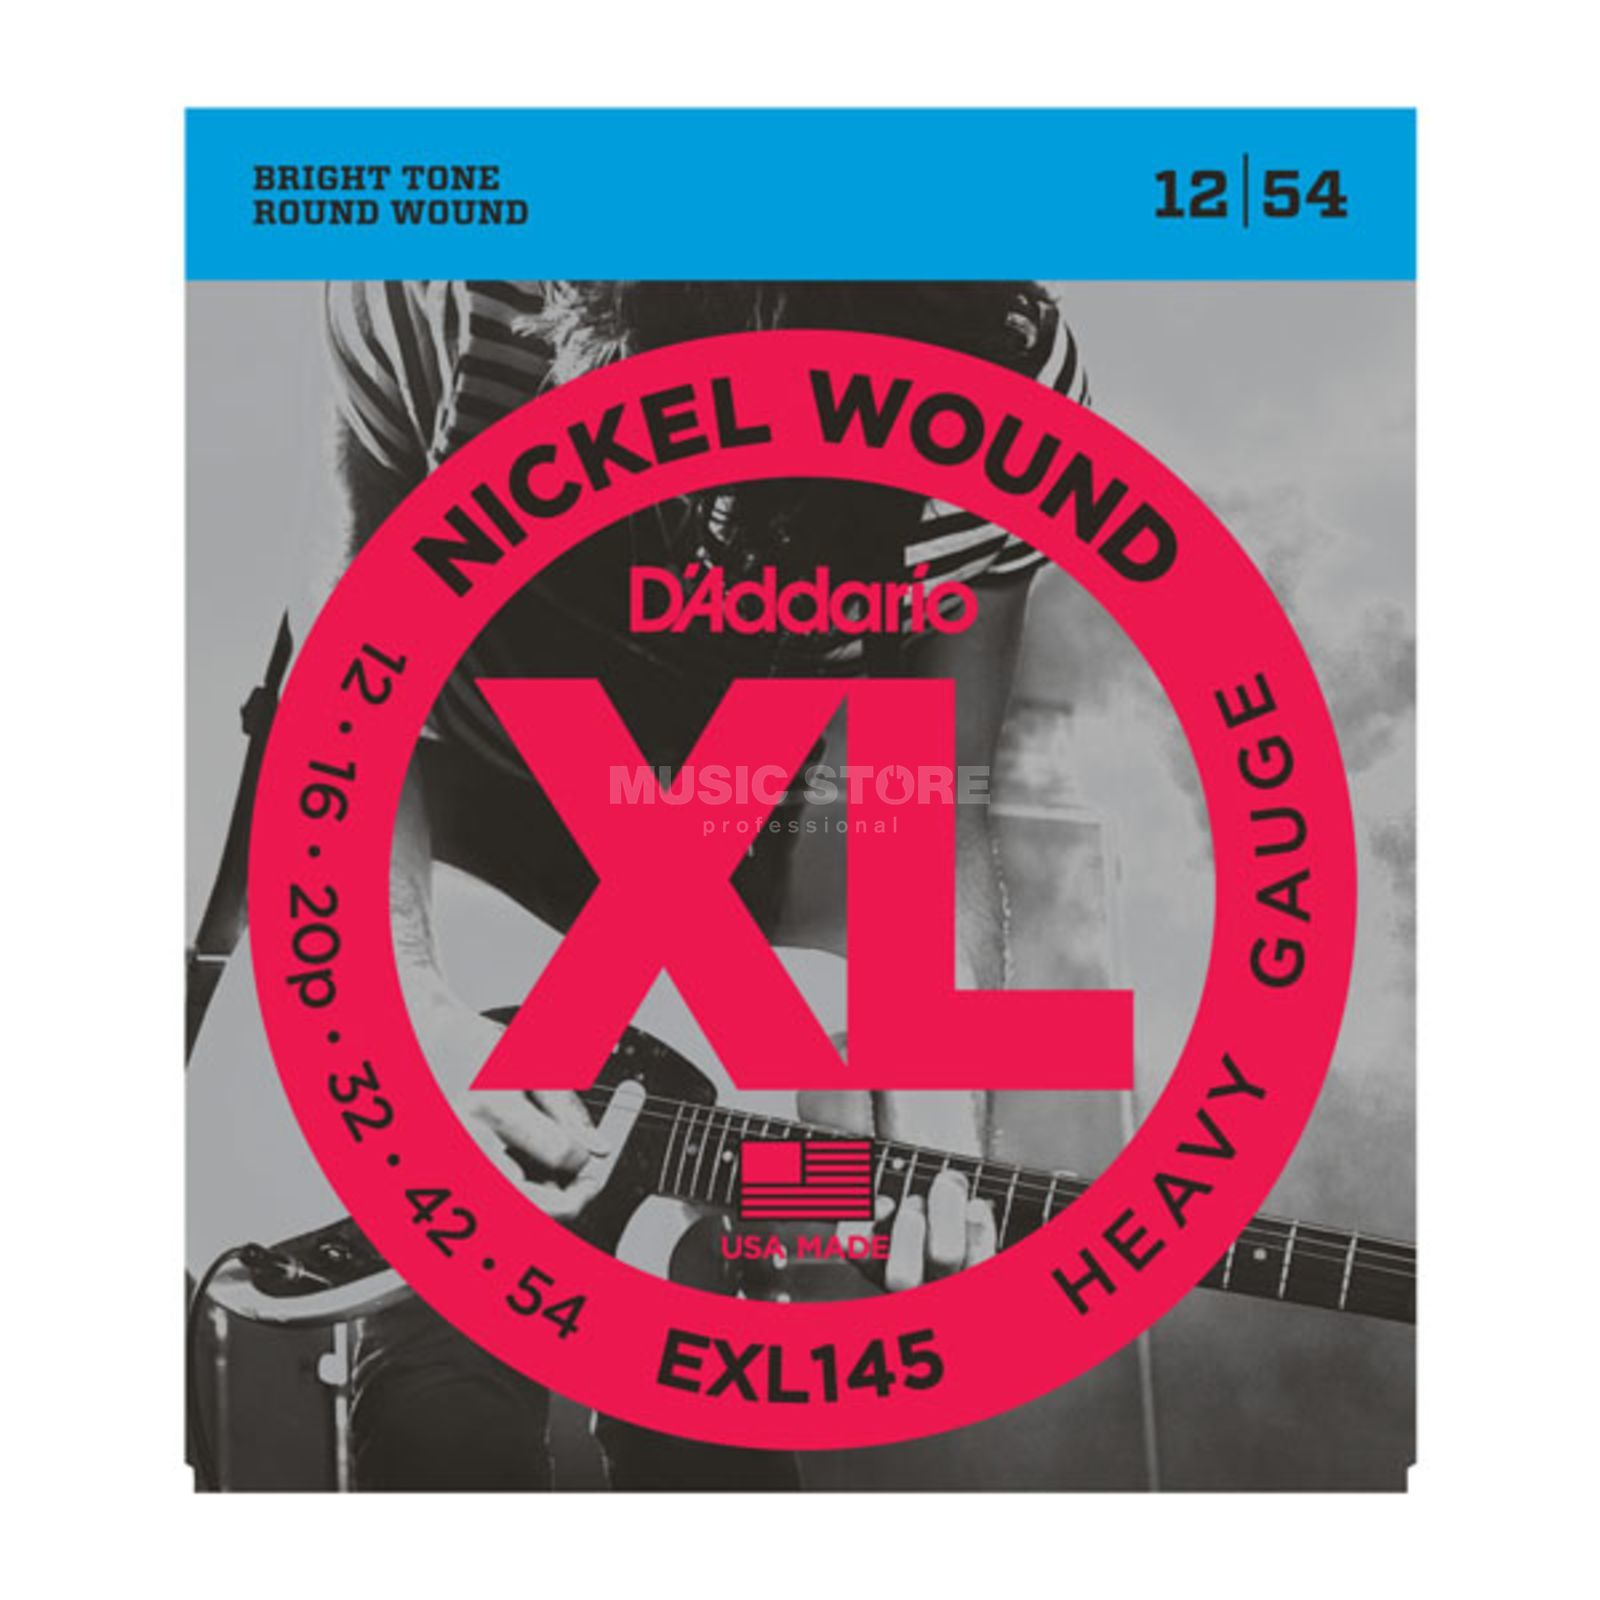 D'Addario E-Guitar Strings EXL145 12-54 Nickel Wound Produktbillede